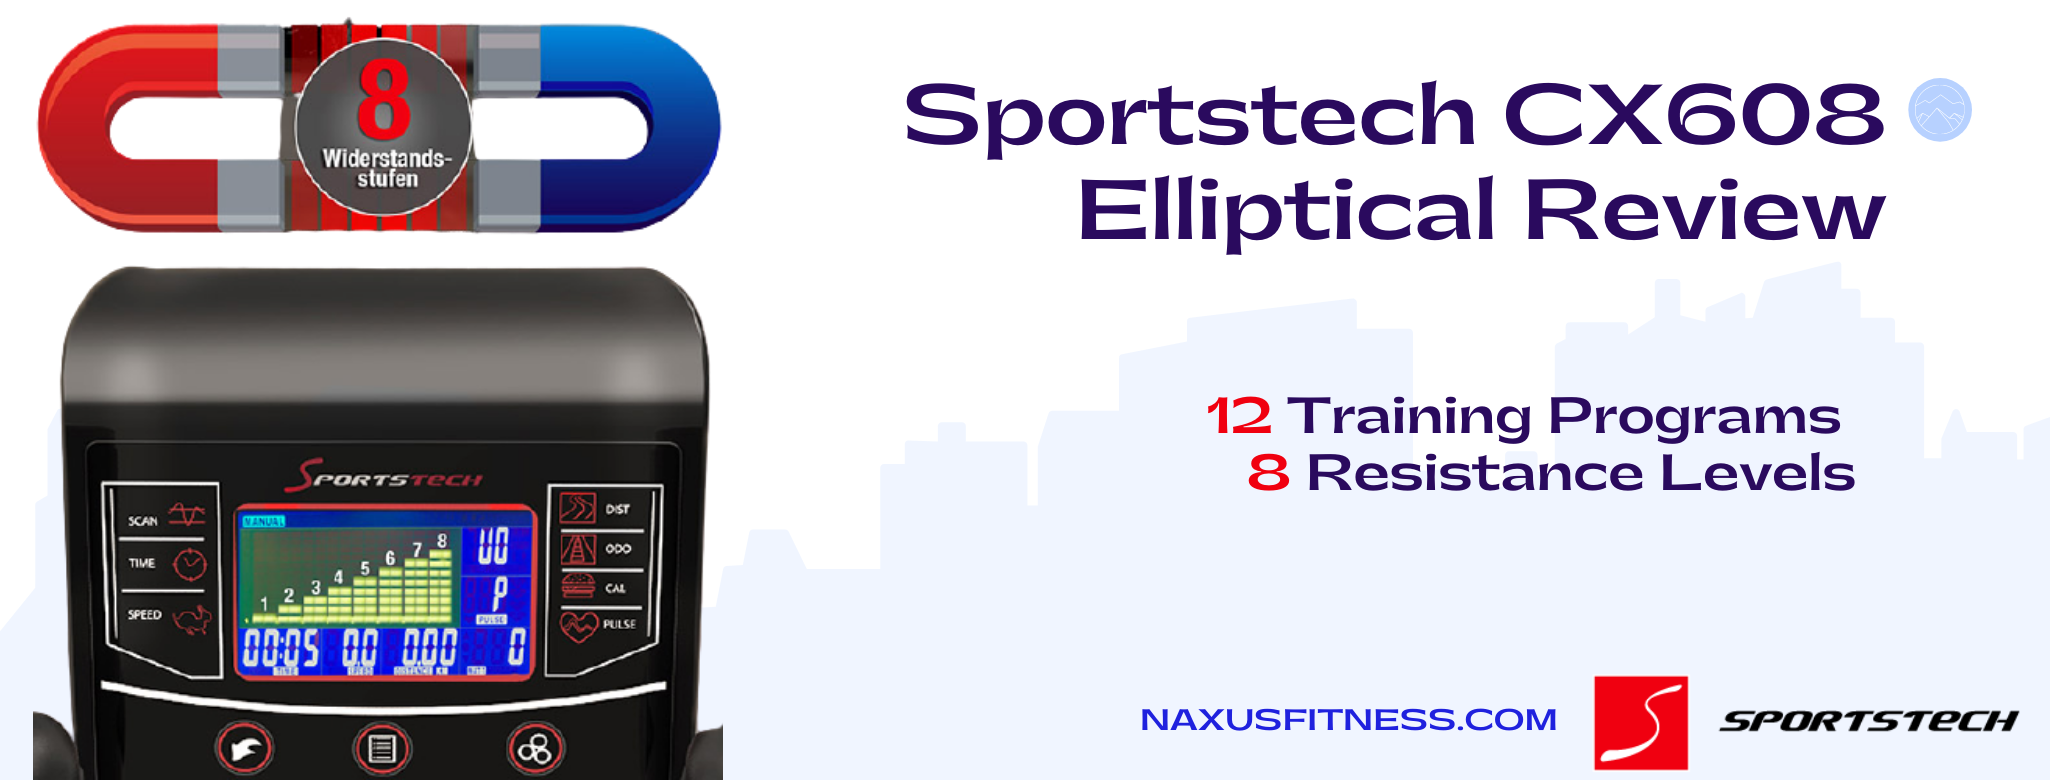 Sportstech CX608 - 12 training programs and 8 resistance levels